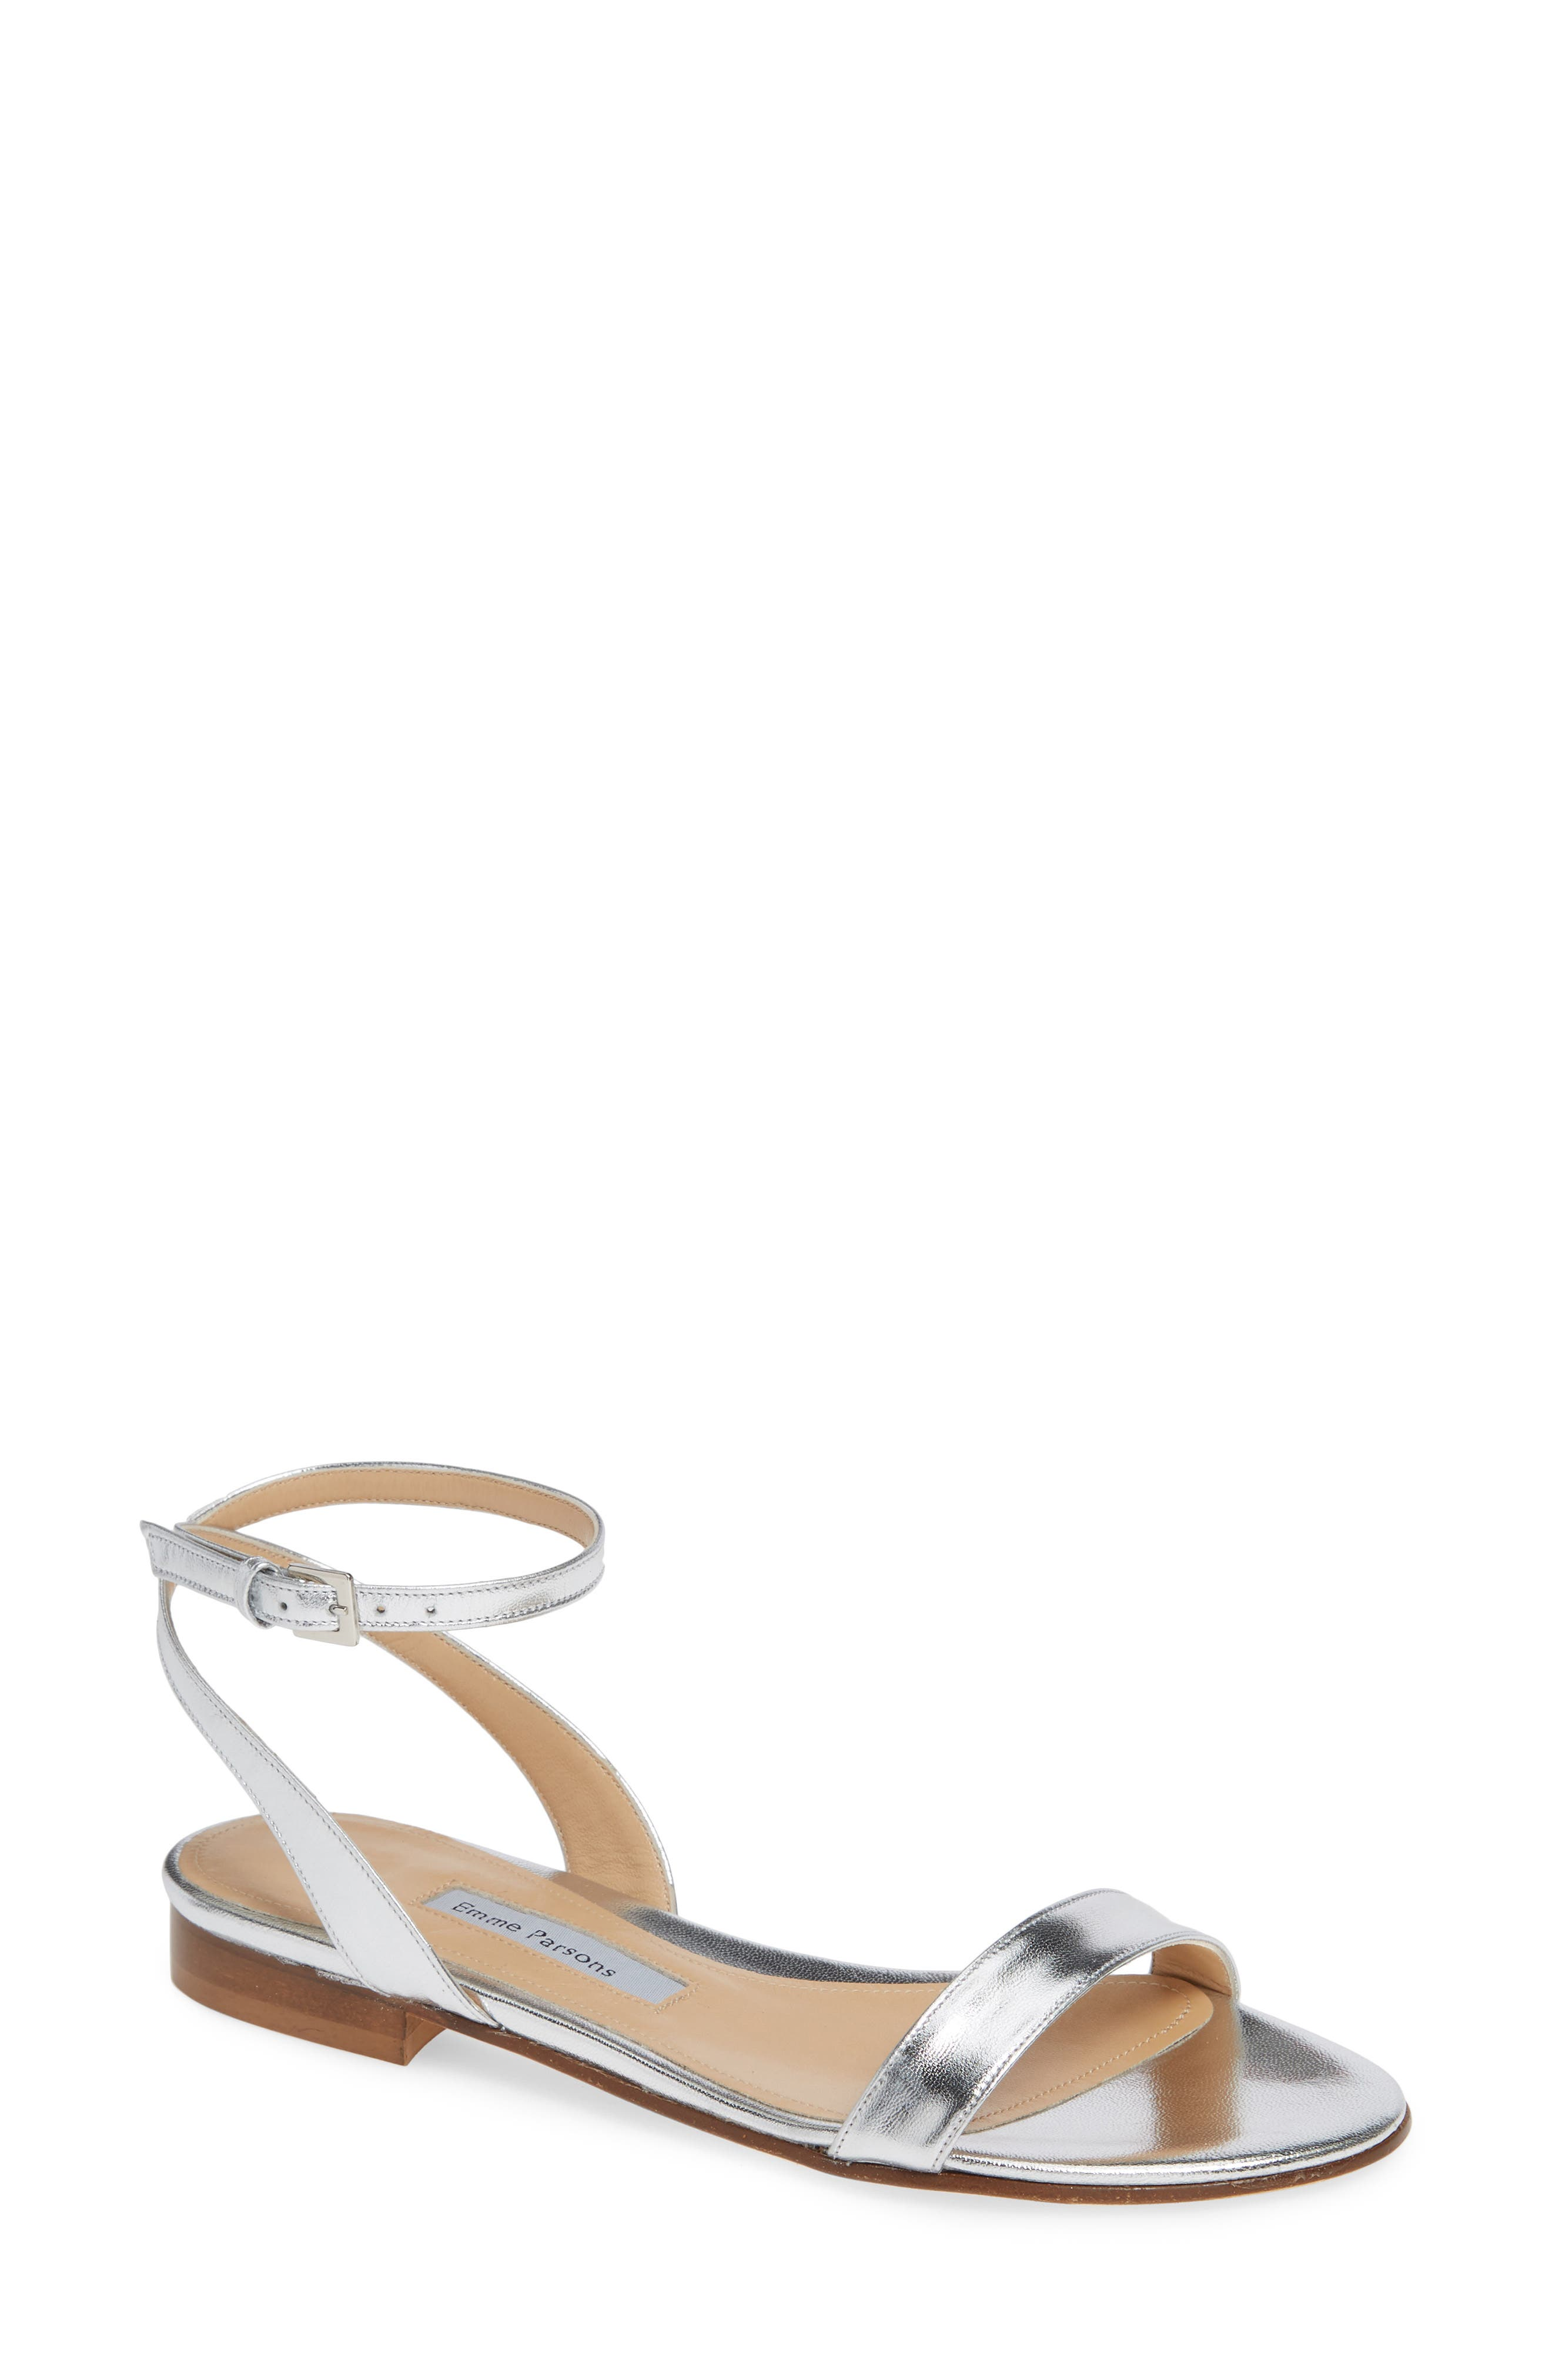 EMME PARSONS One Flat Sandal in Silver